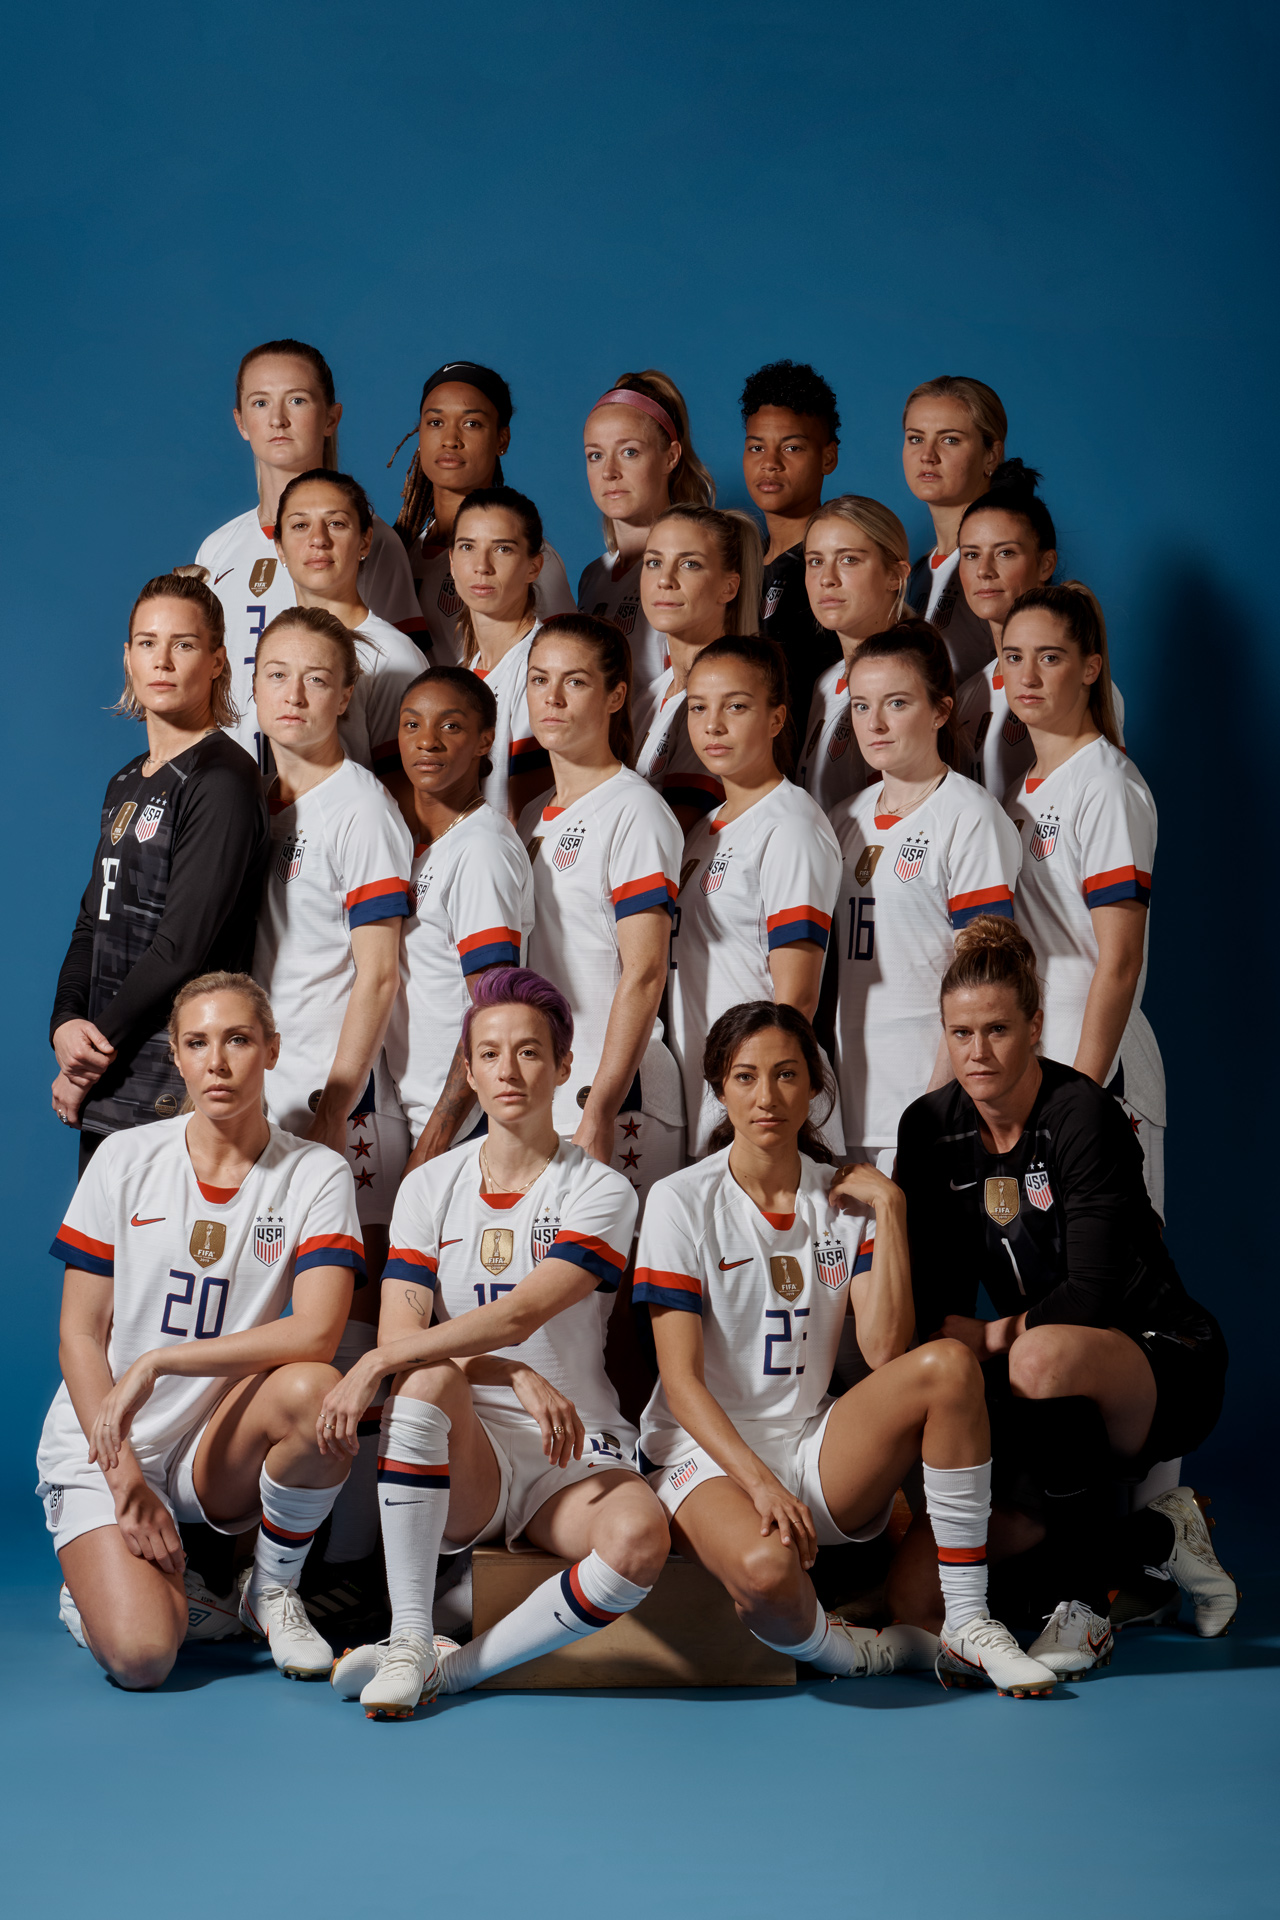 U S Women S Soccer Team Time S Athlete Of The Year 2019 Time